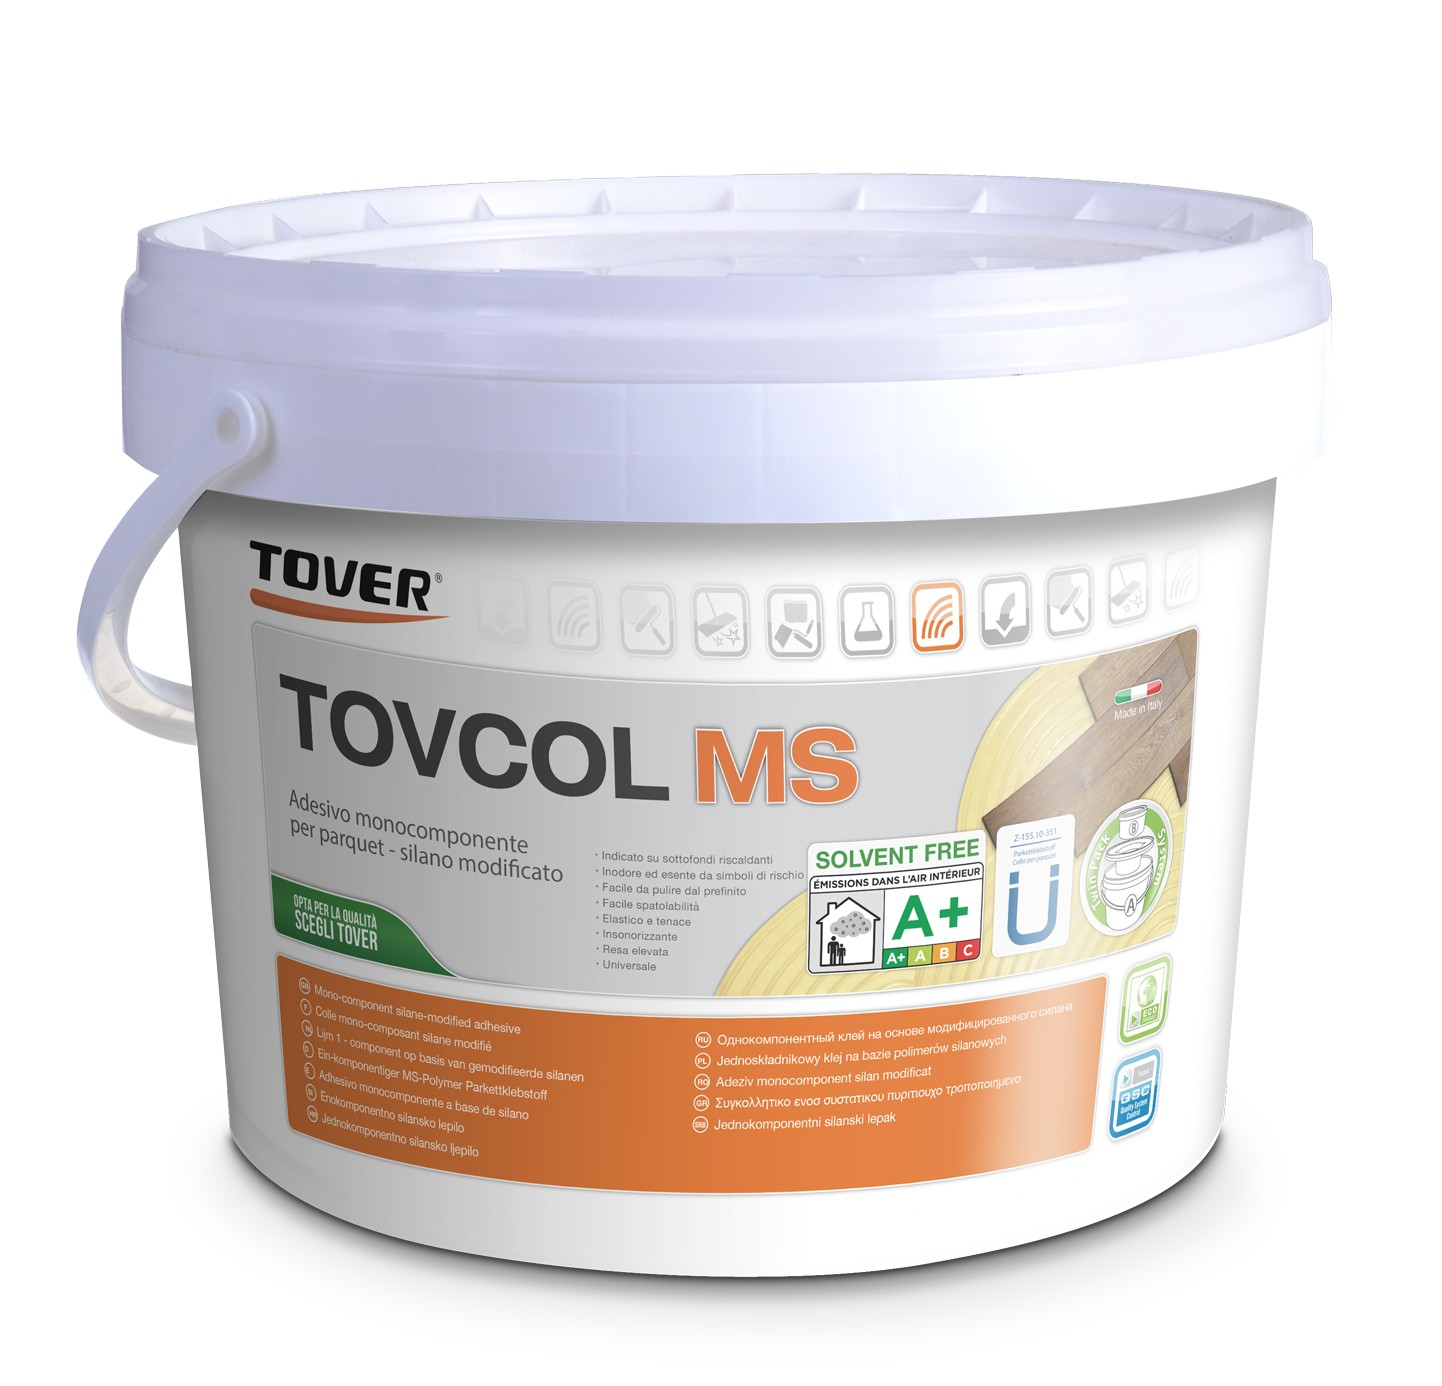 Tover  Mono-Component Silane Modified Adhesive Tovcol MS Polymer,15kg